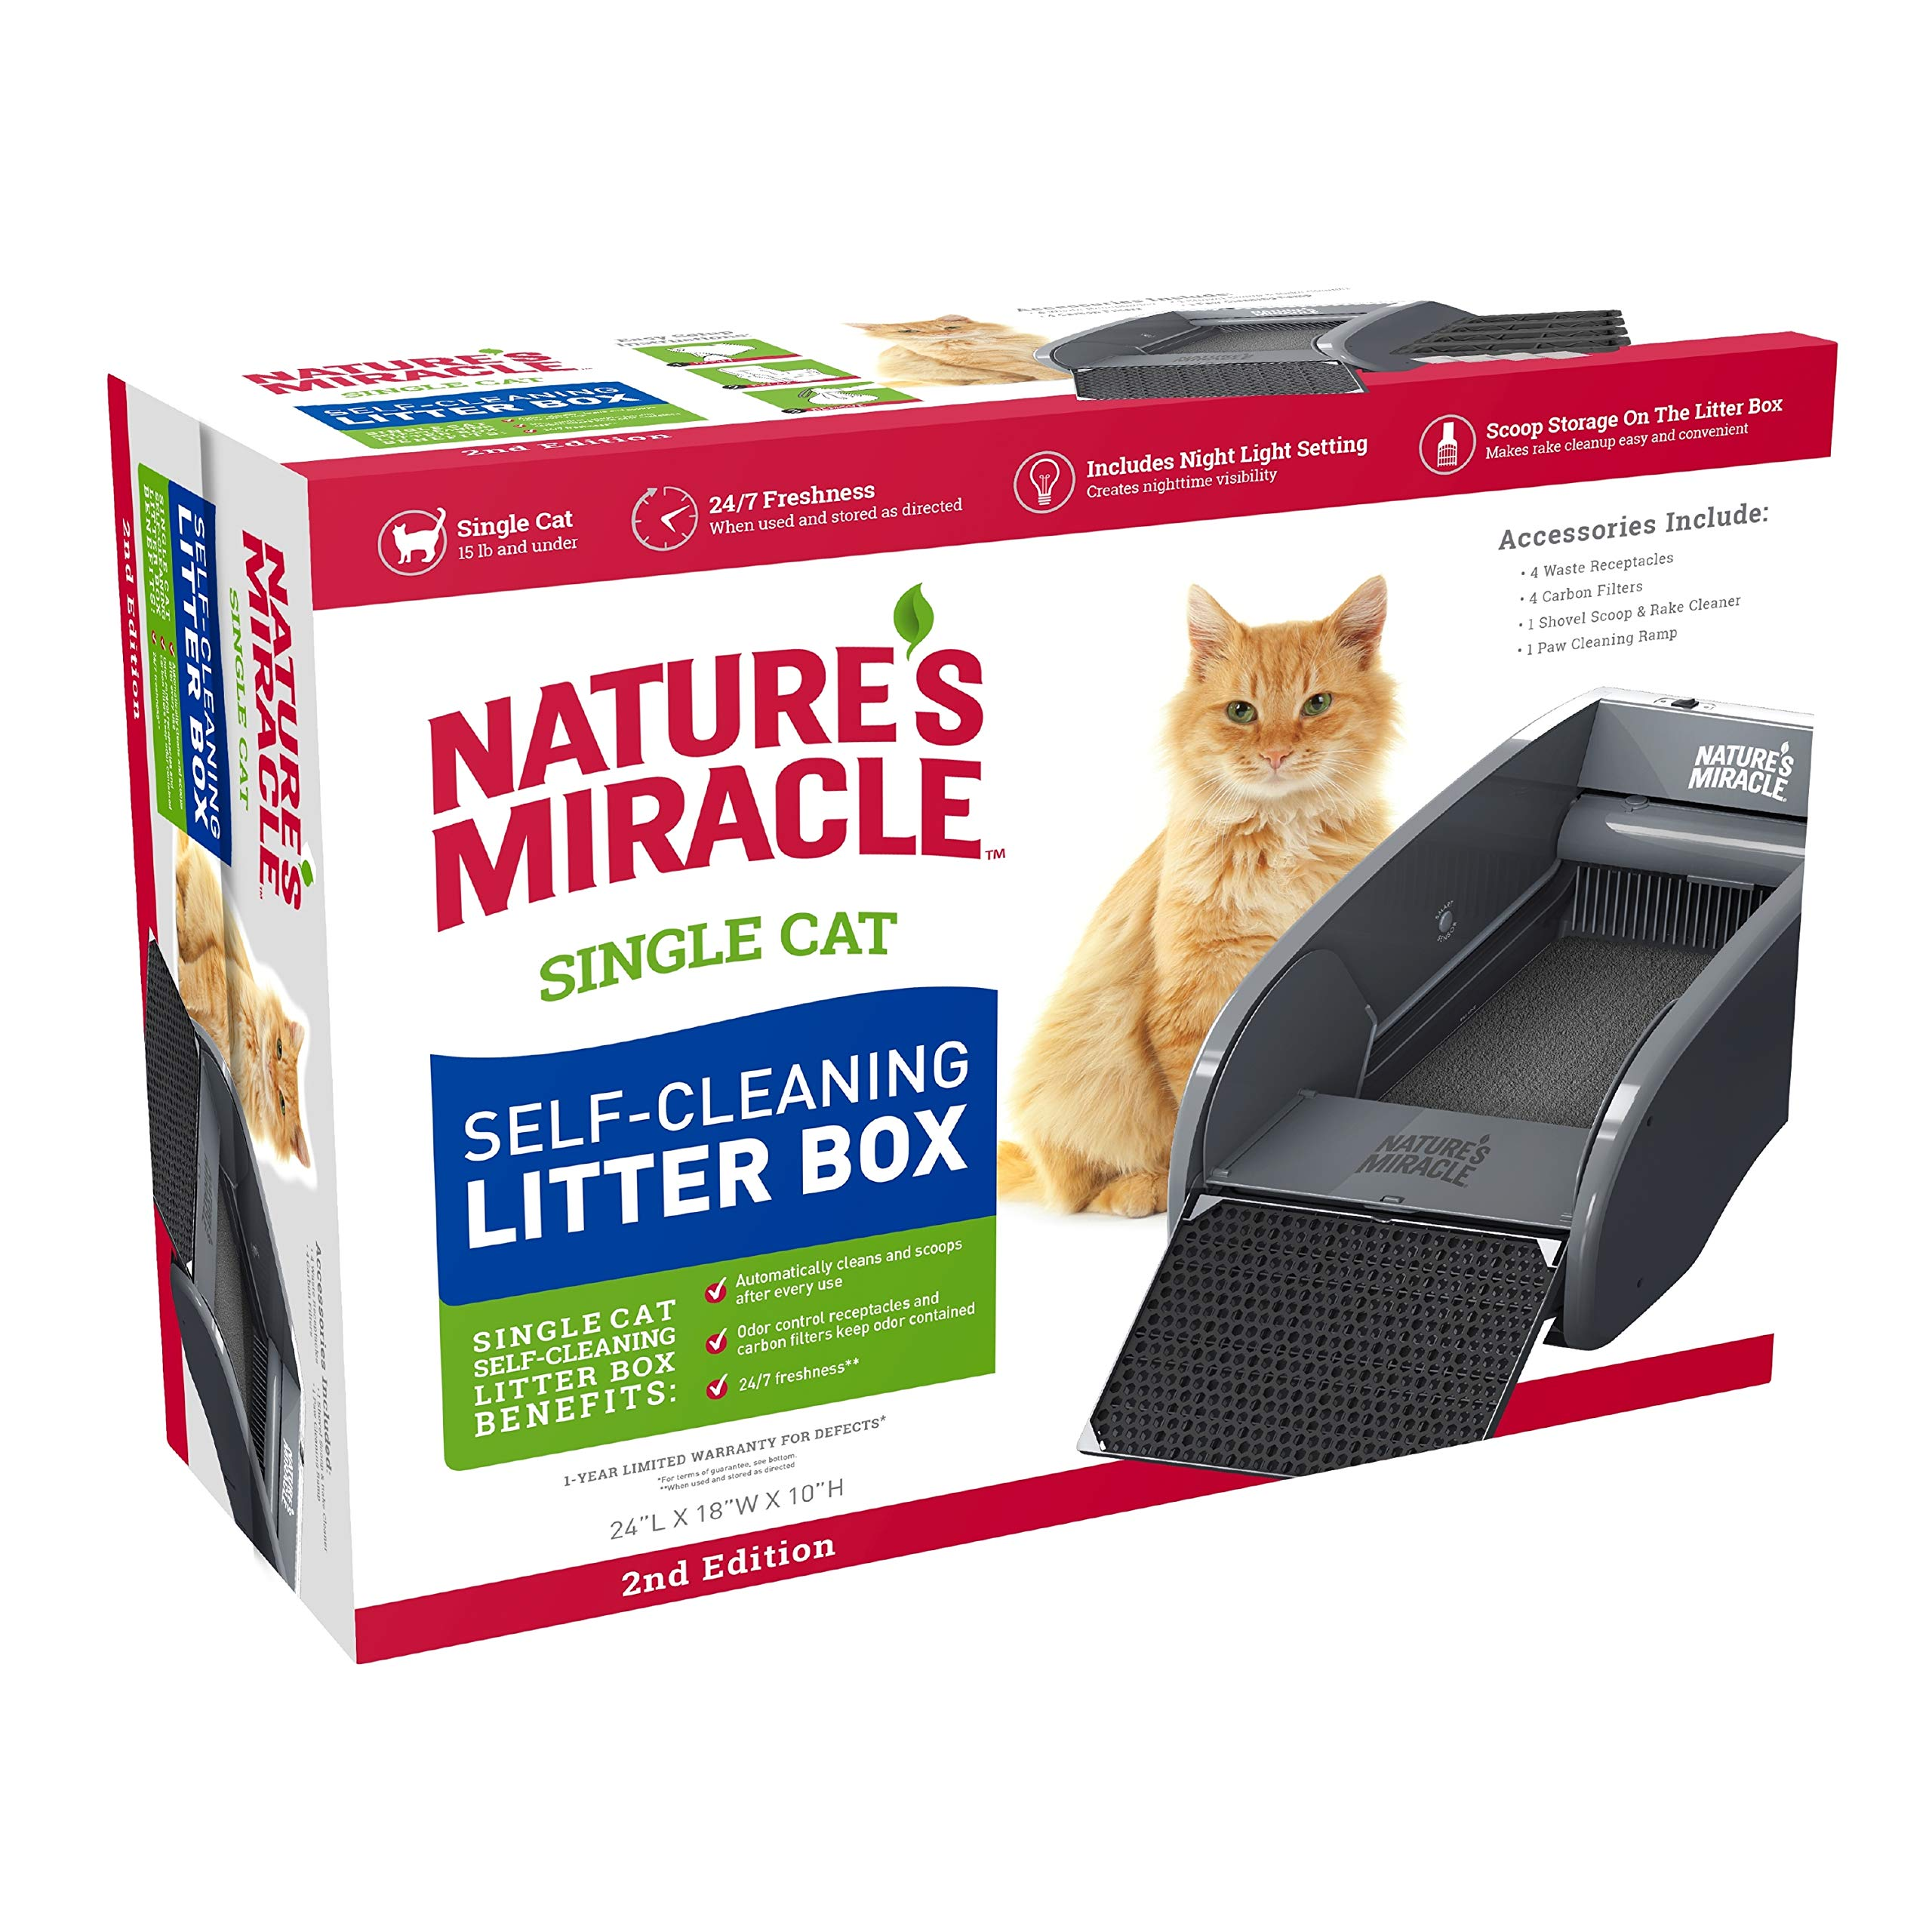 Nature's Miracle Nature's Miracle Single-Cat Self-Cleaning Litter Box (NMA500) by Nature's Miracle